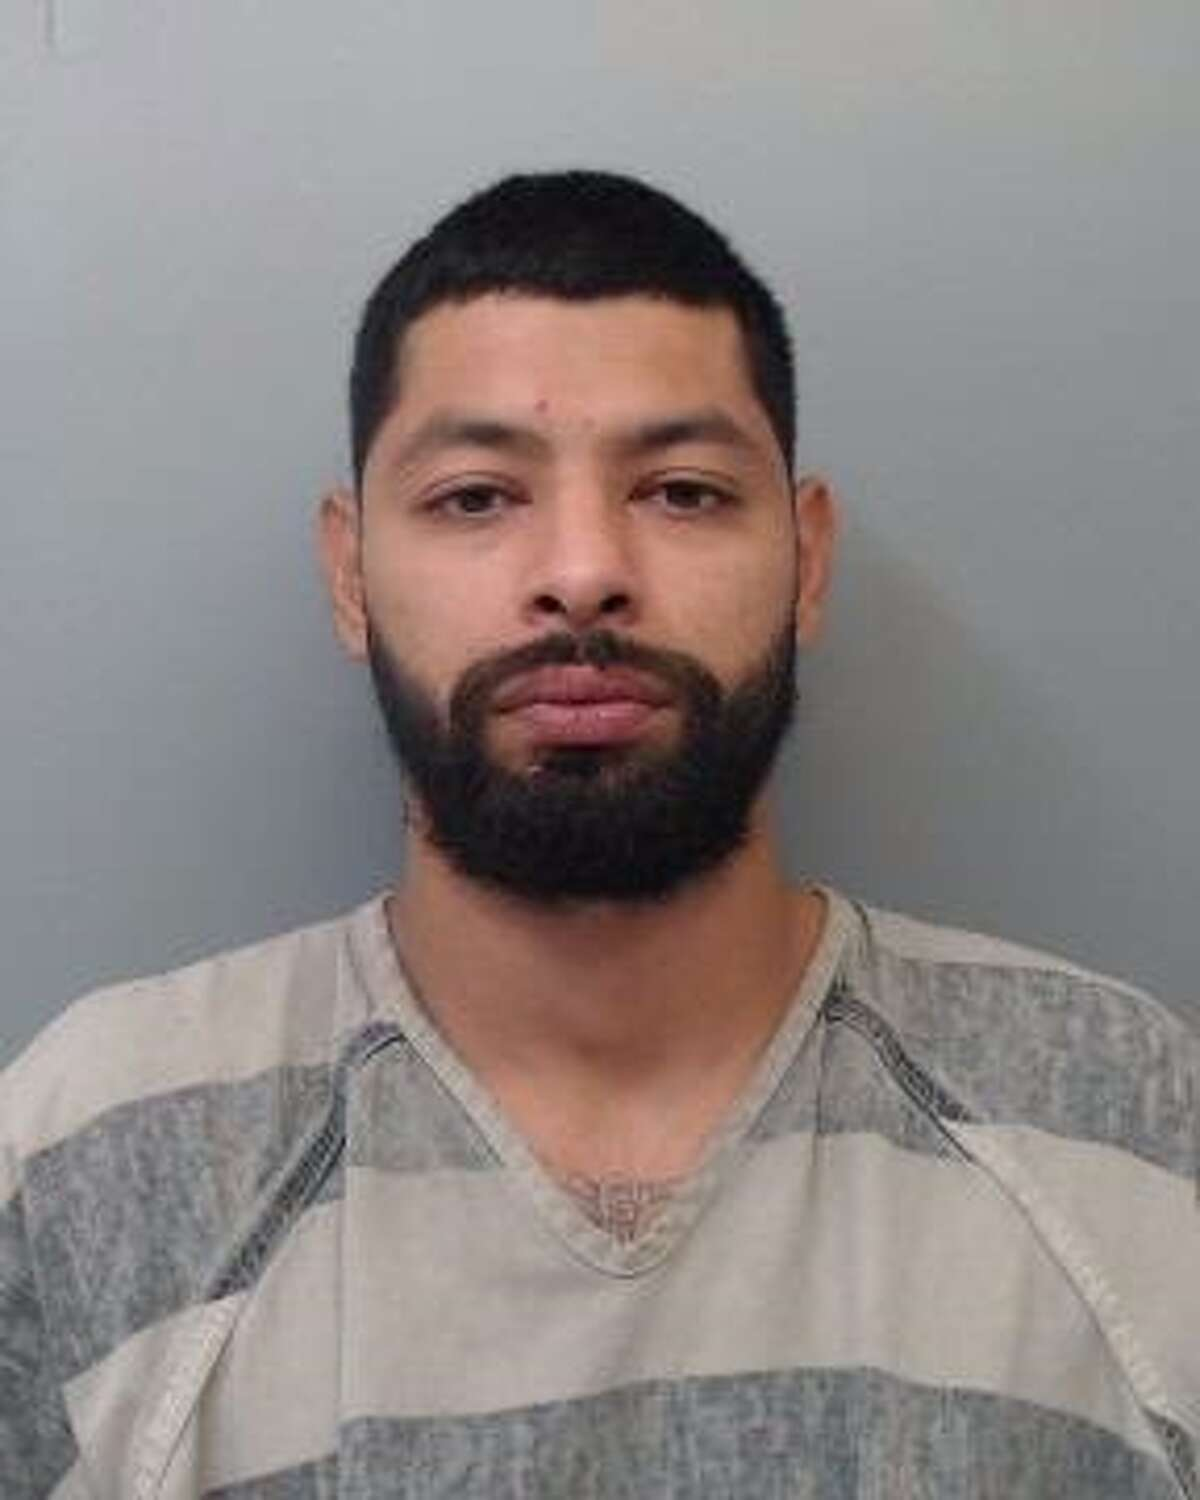 Jesus Chavez, 29, was charged with assault, family violence.